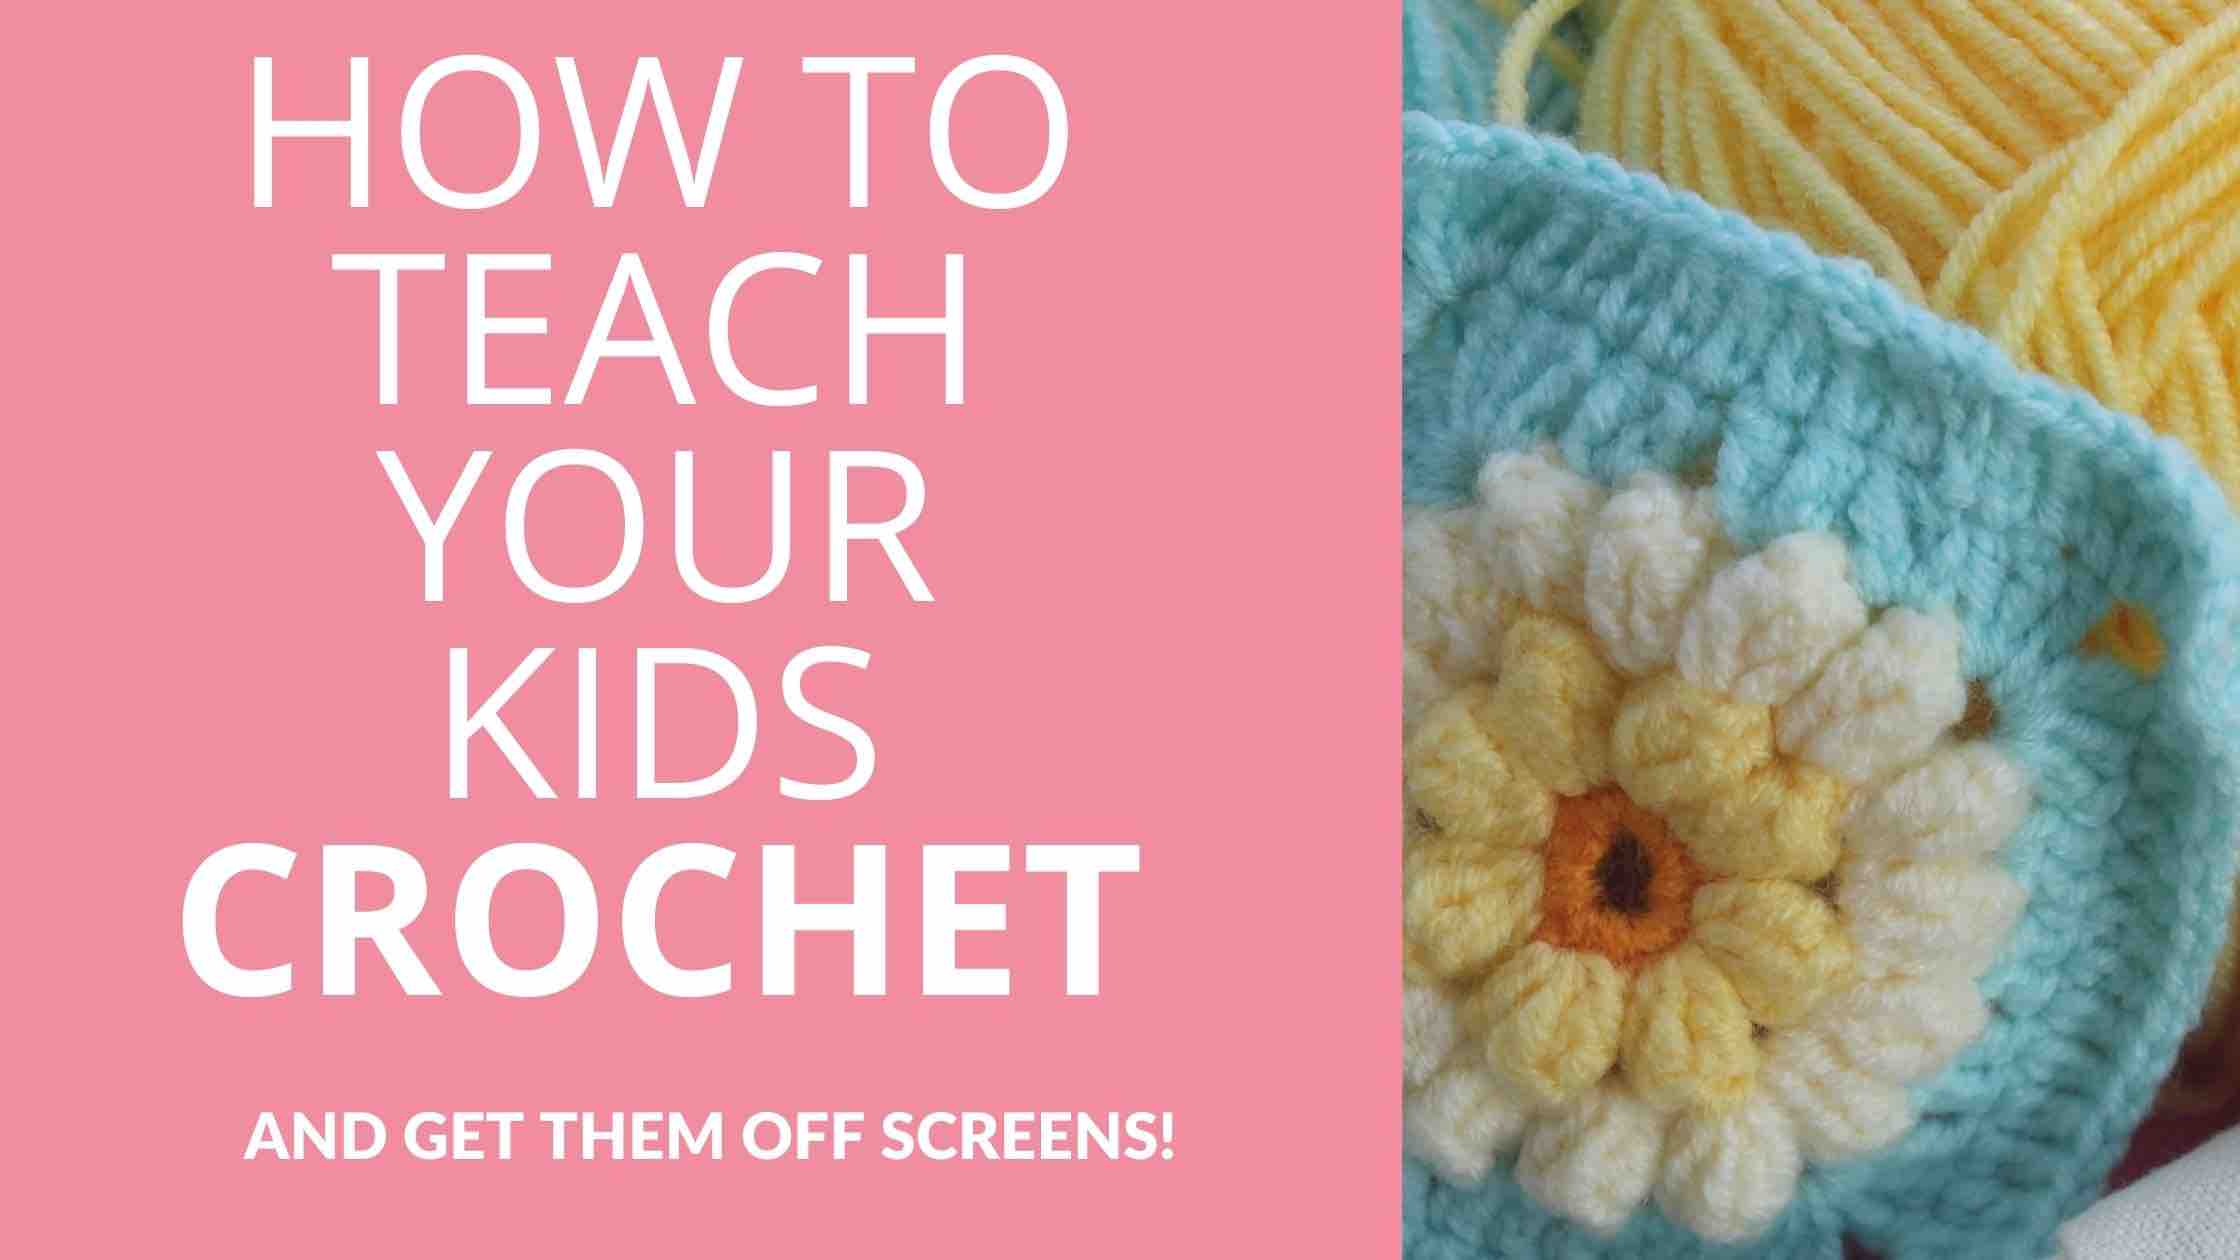 How To Teach Your Kids Crochet And Get Them Off Screens Start Crochet (1)